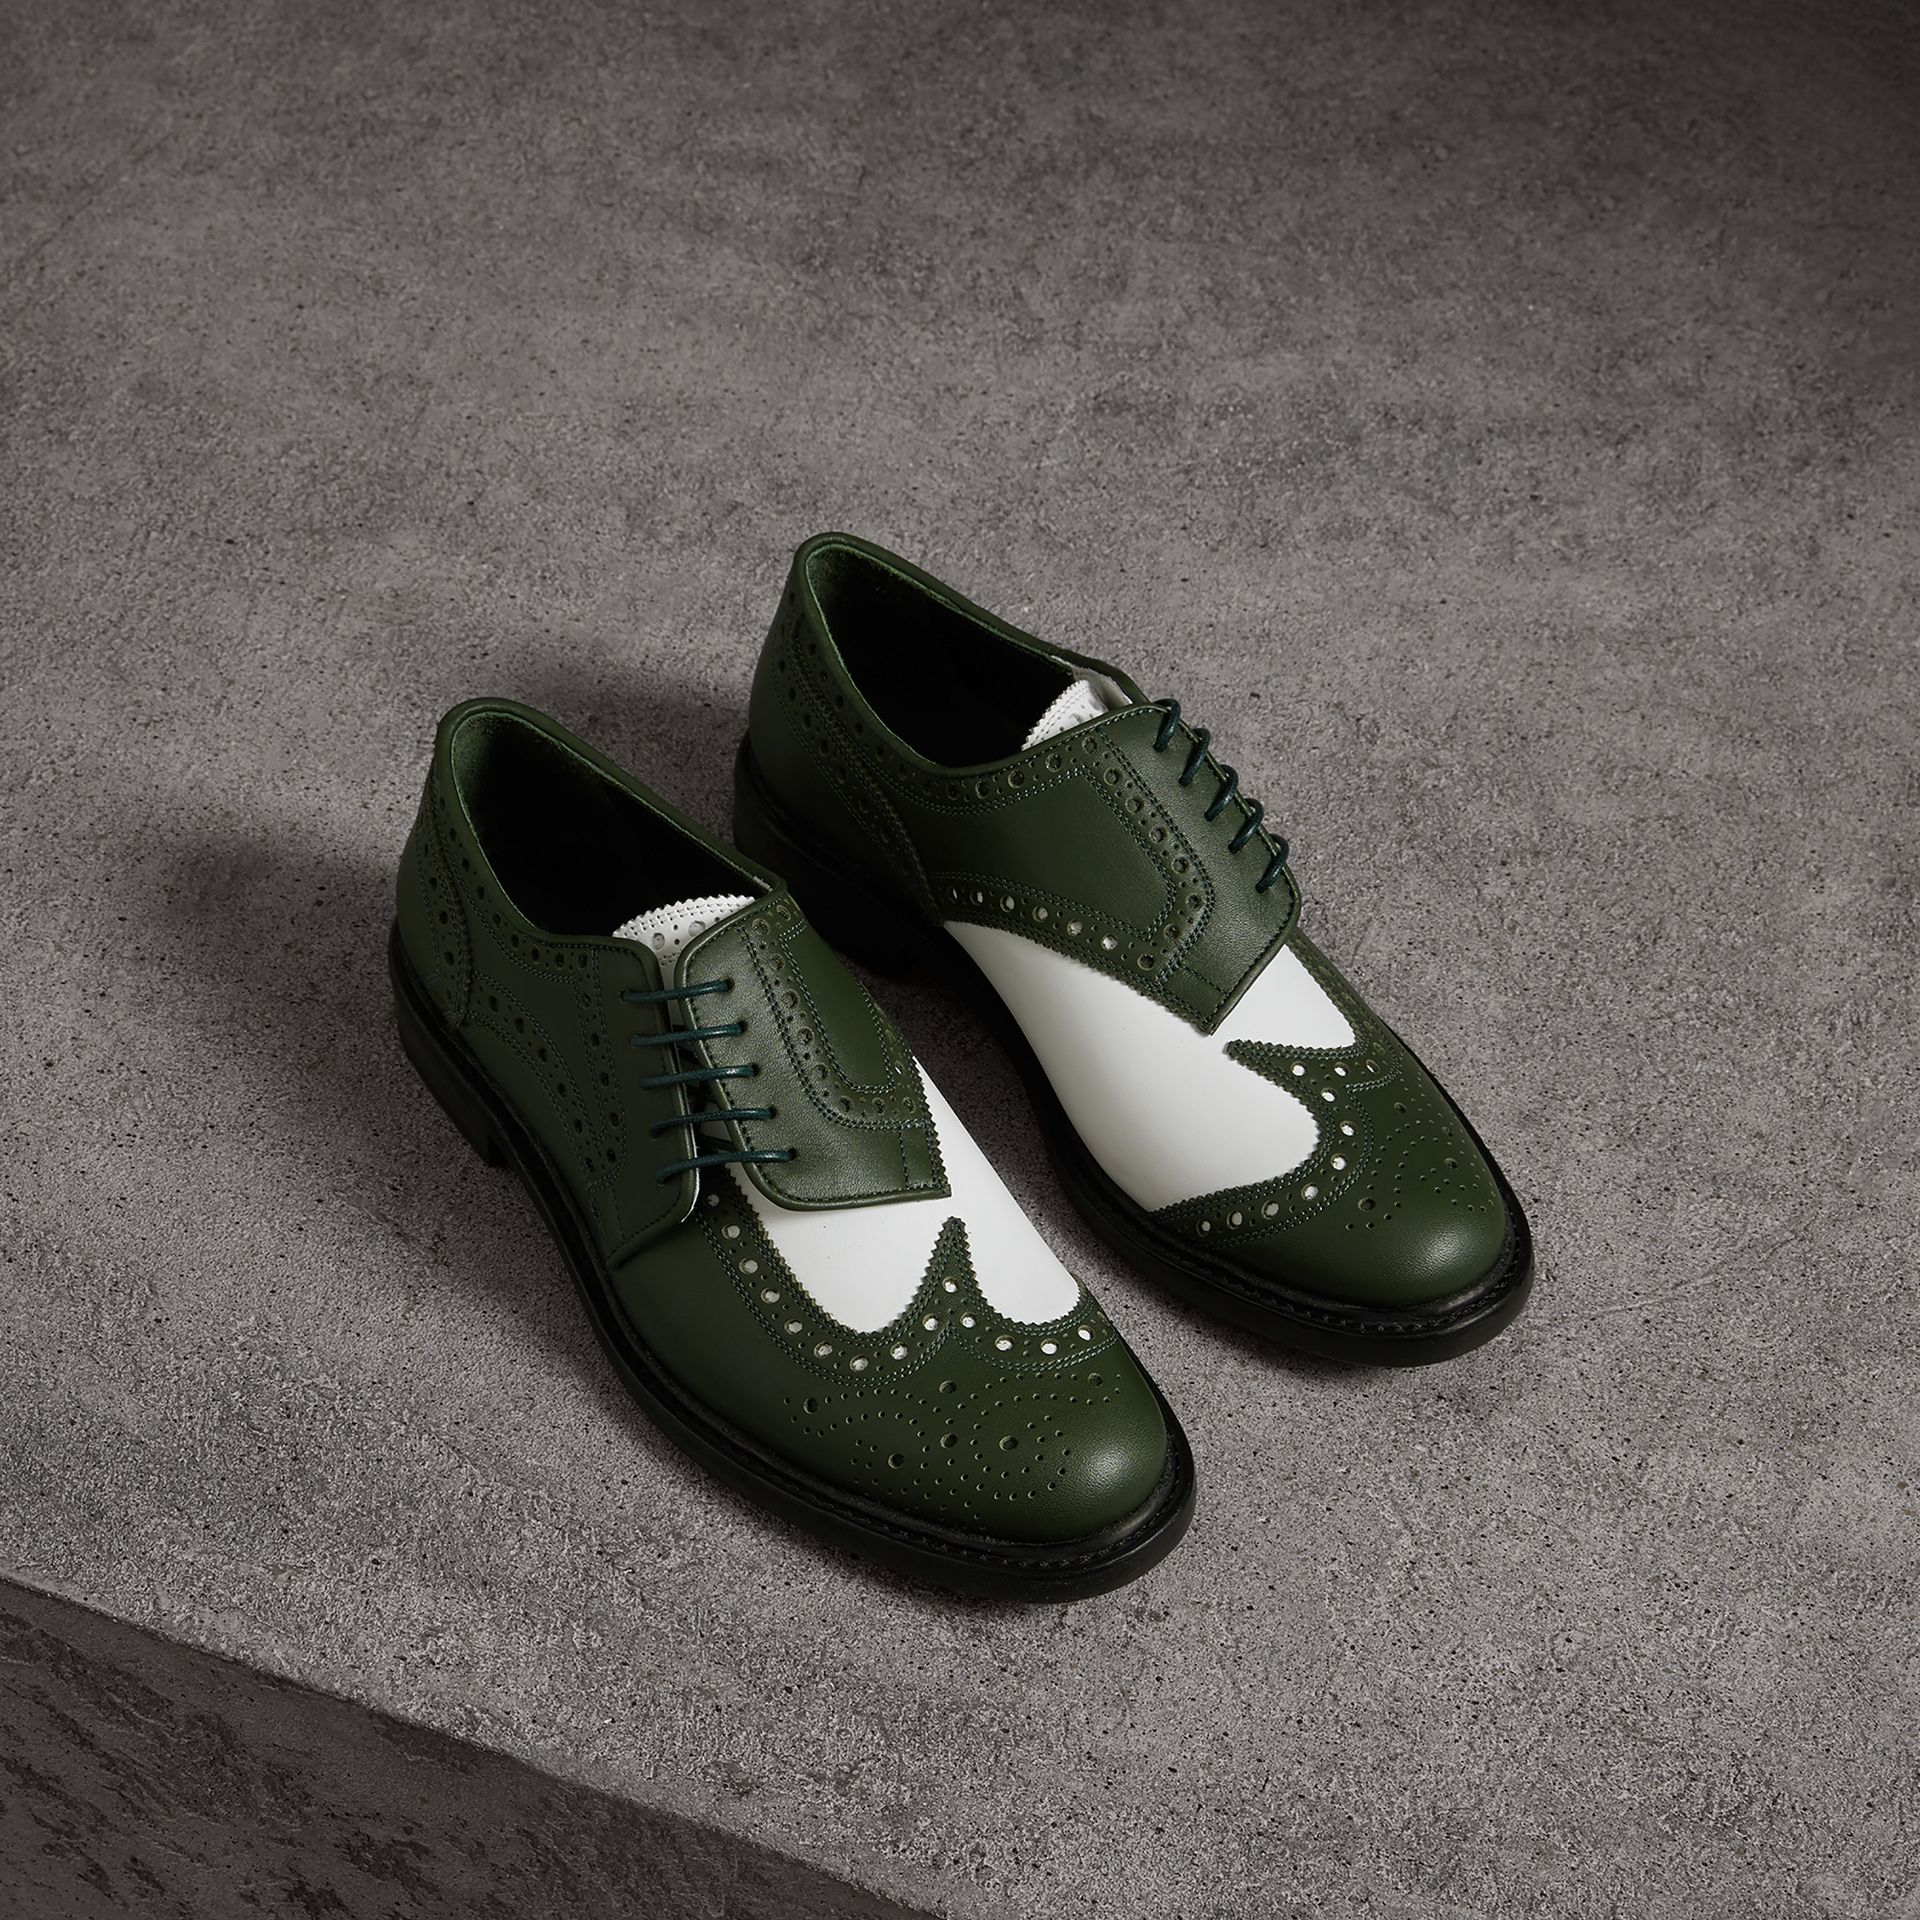 Two-tone Asymmetric Closure Leather Brogues in Dark Green - Women | Burberry United States - gallery image 0